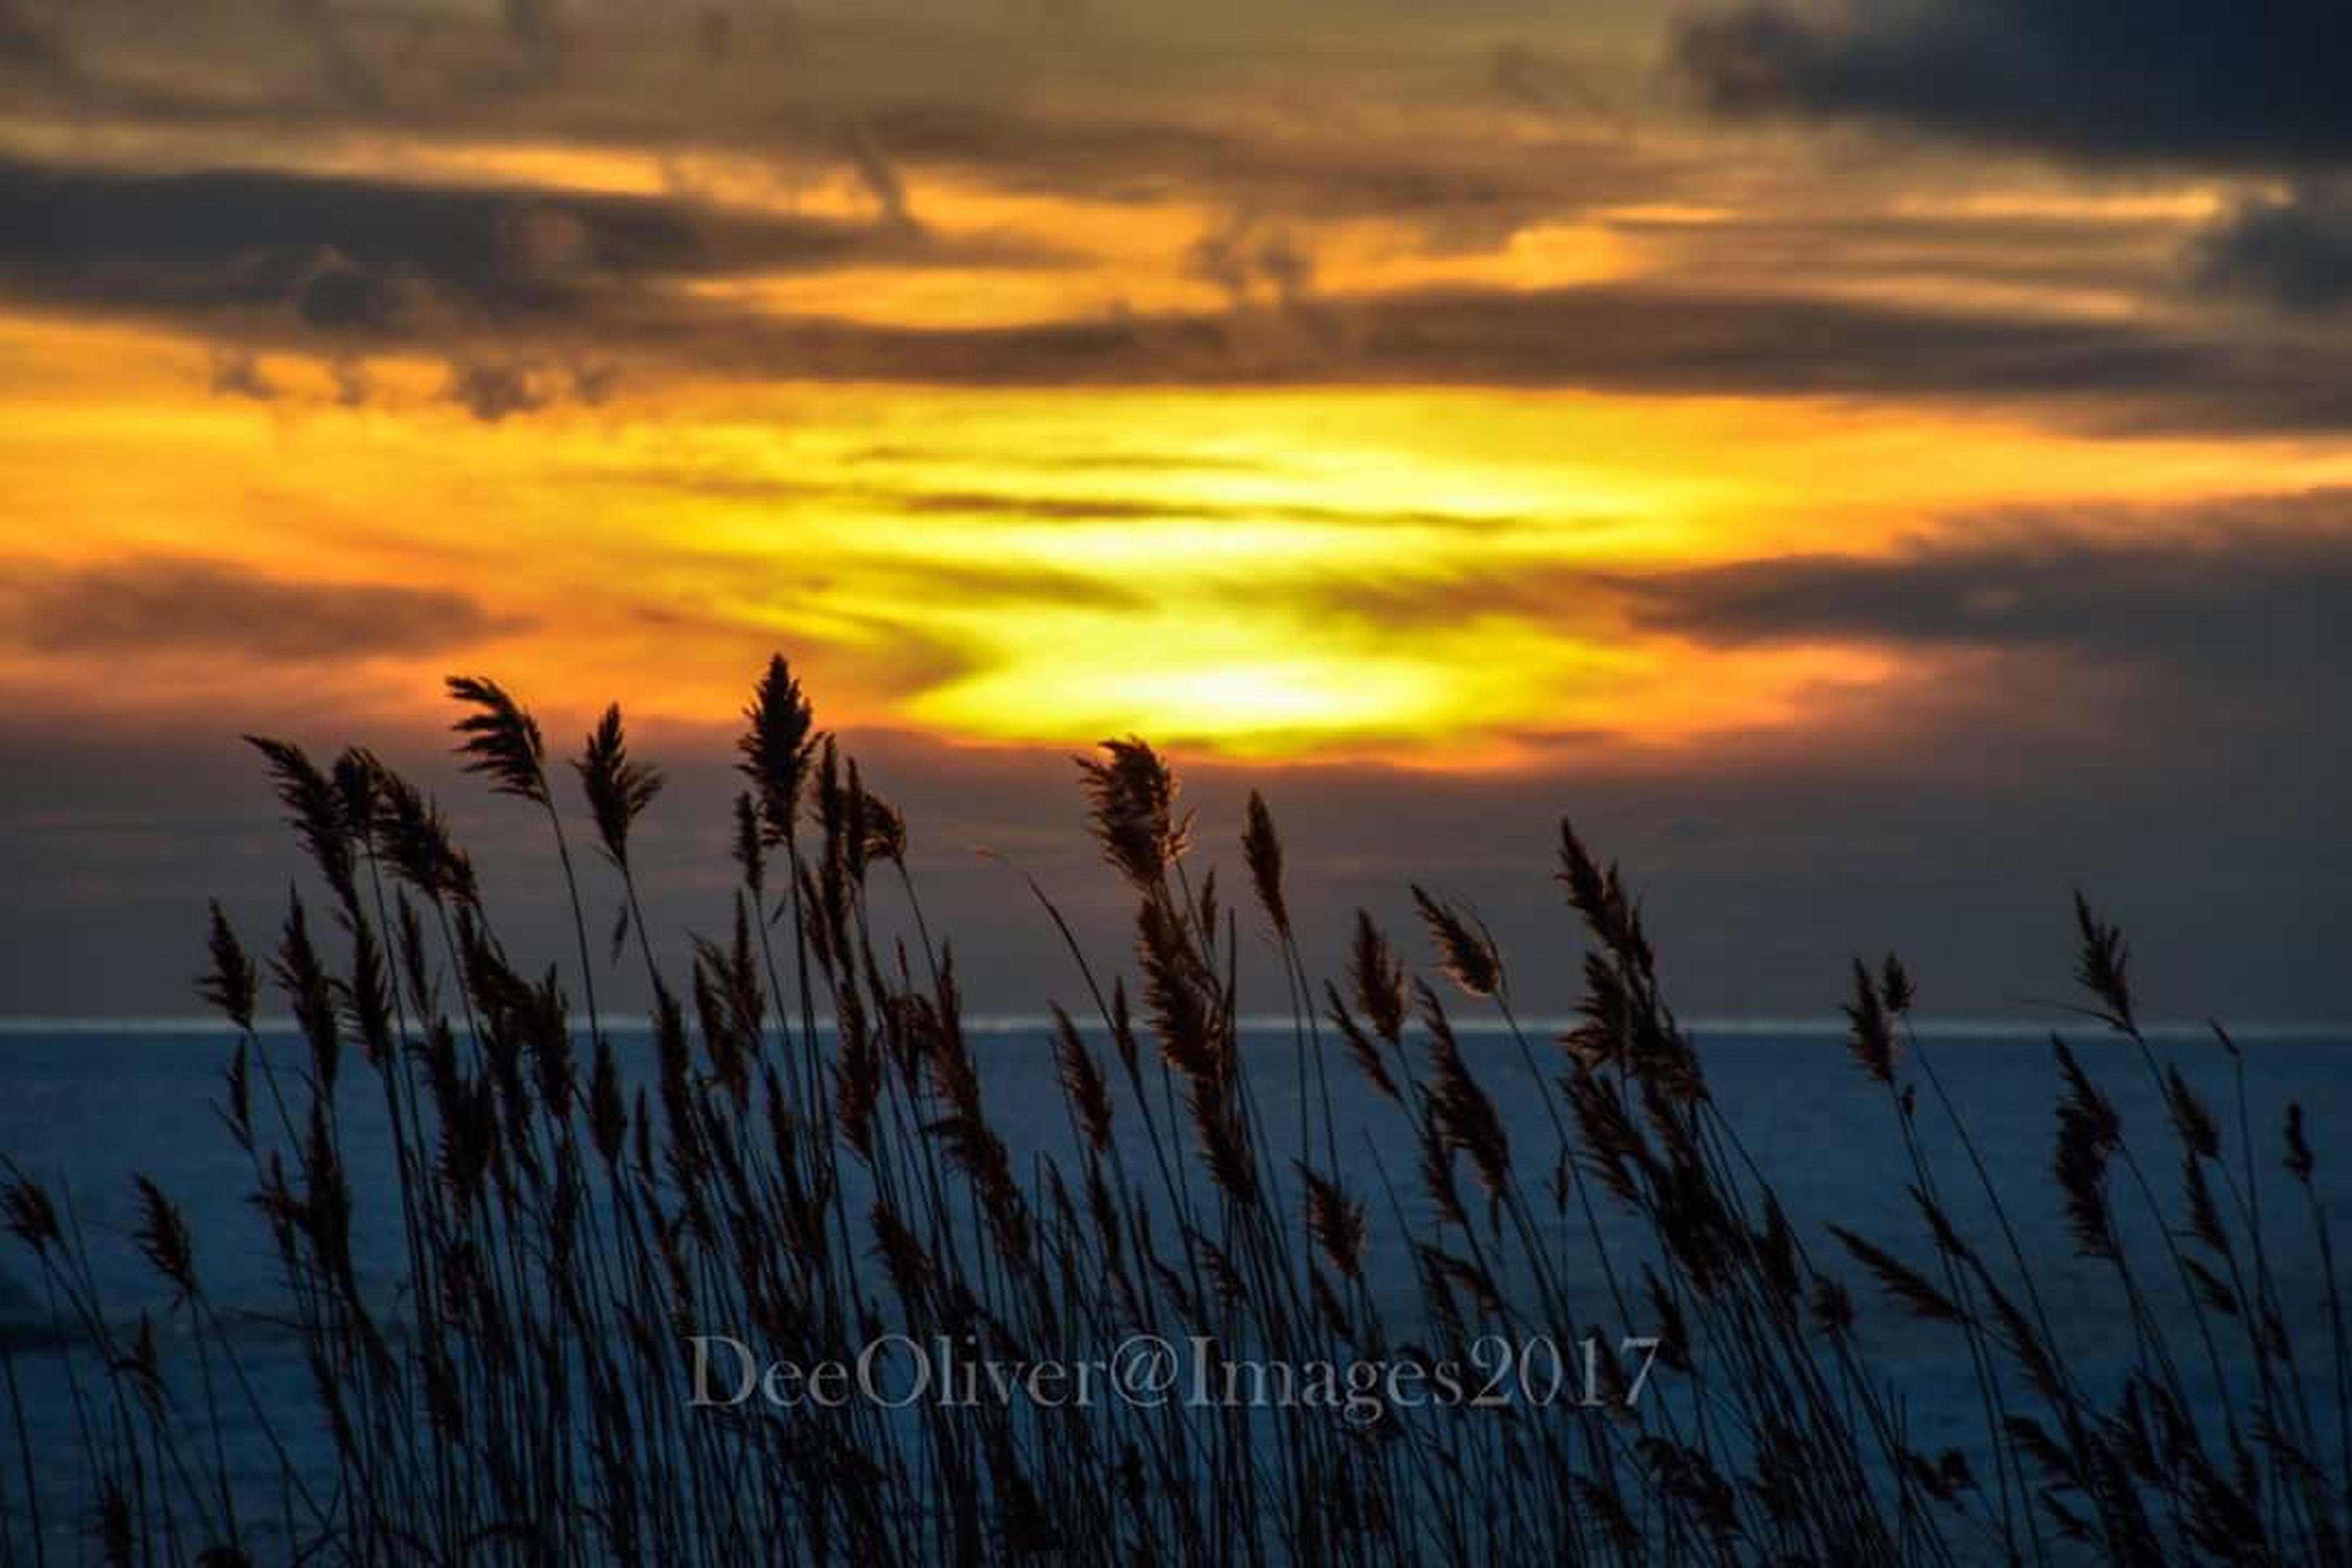 sunset, nature, cloud - sky, outdoors, no people, growth, sky, scenics, beauty in nature, tranquility, silhouette, landscape, tree, marram grass, day